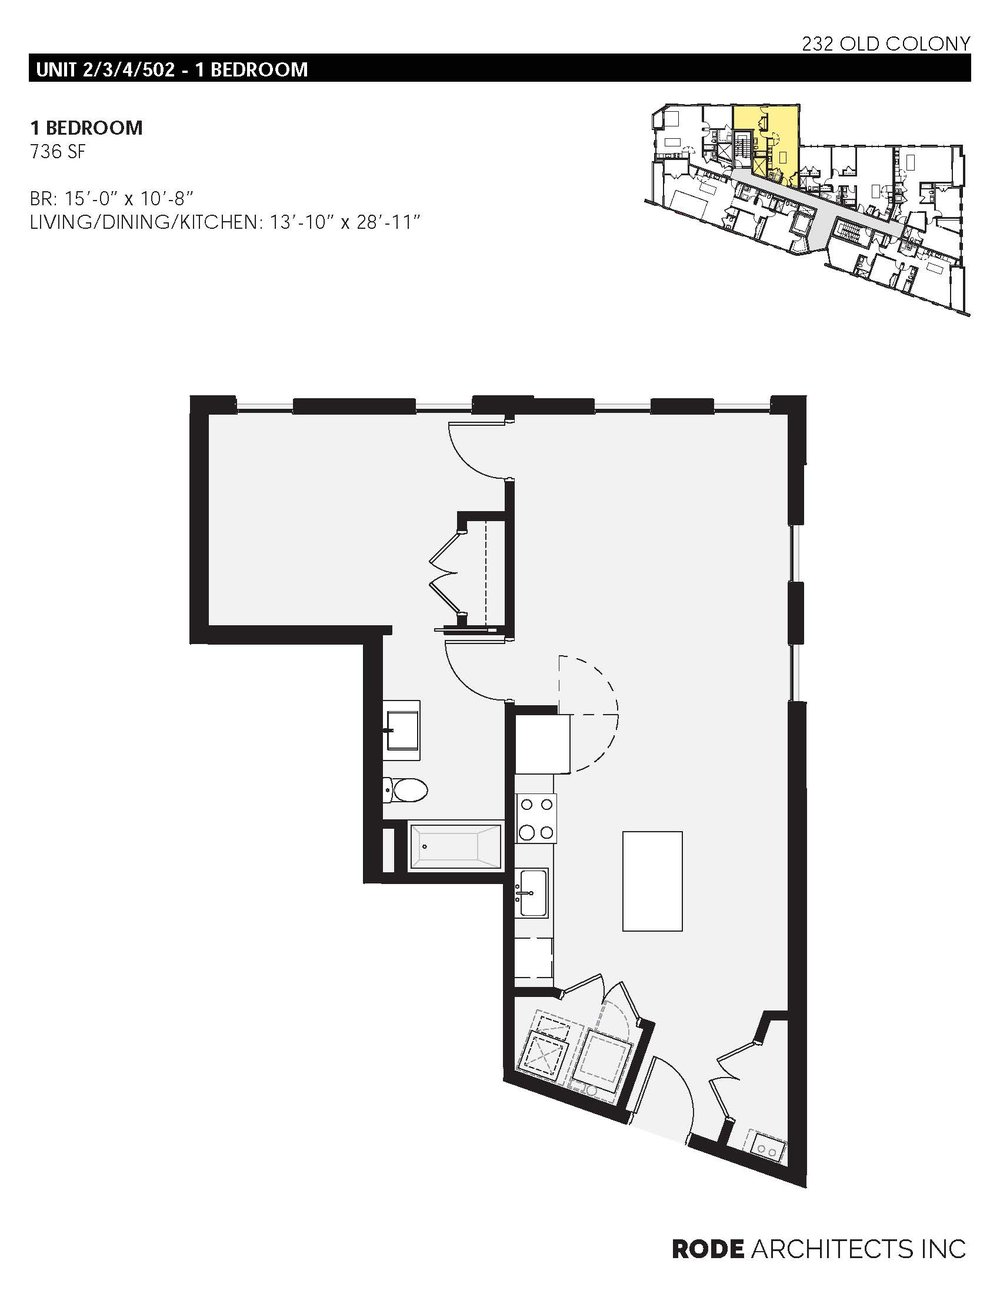 232 Old Colony - Marketing Plans (1)_Page_2.jpg